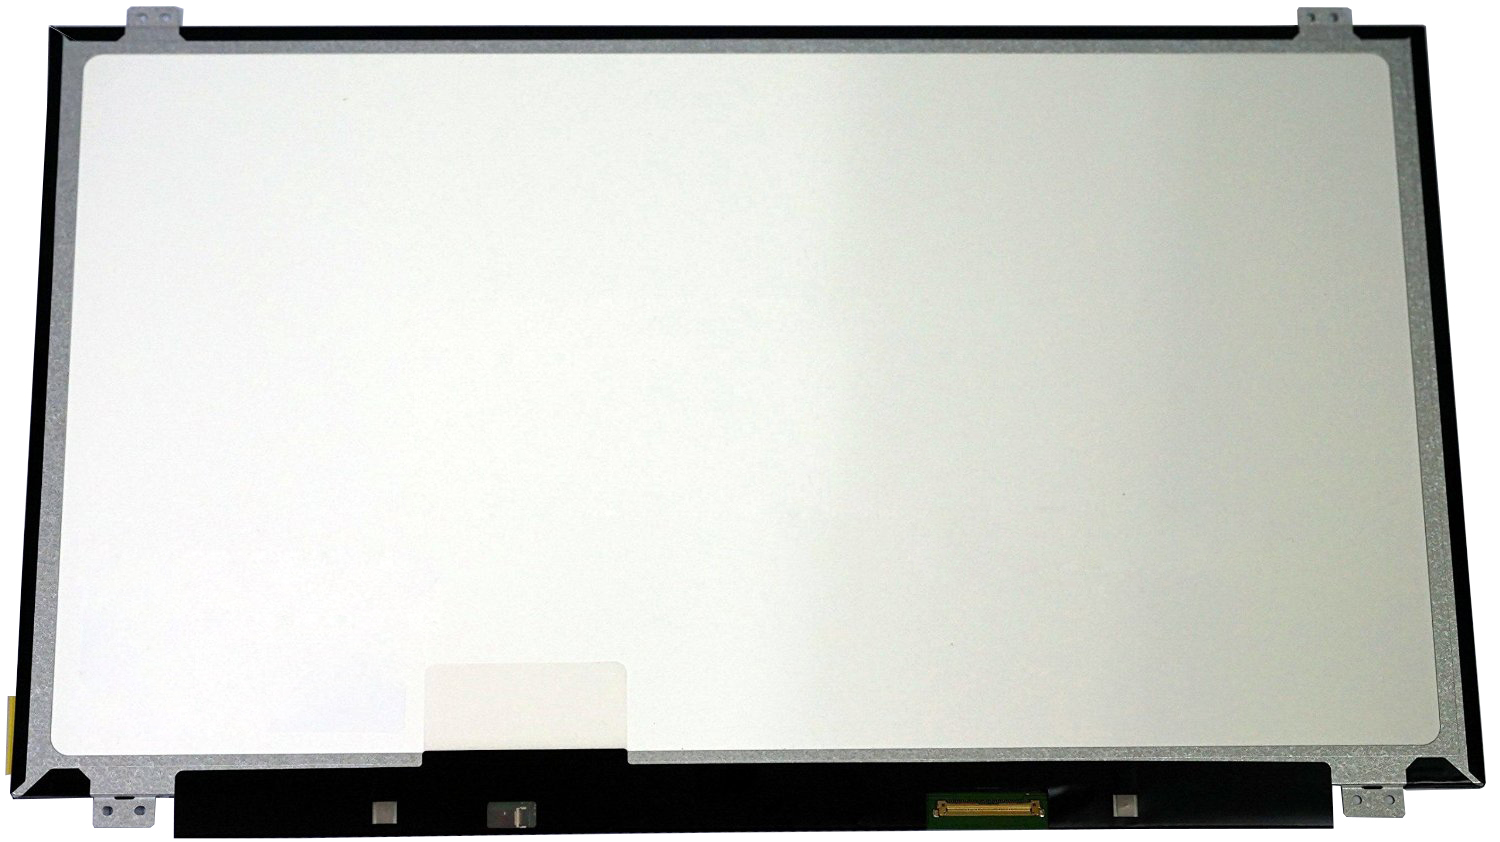 QuYing Laptop LCD Screen for Acer ASPIRE VN7-571 VN7-571G V3-575 V3-574TG V3-574T V3-575G E5-552 SERIES(15.6 1366x768 30pin) quying laptop lcd screen for acer aspire v5 571p v5 552pg e5 531 es1 512 e5 572g e5 573 e5 573g series 15 6 1366x768 30pin